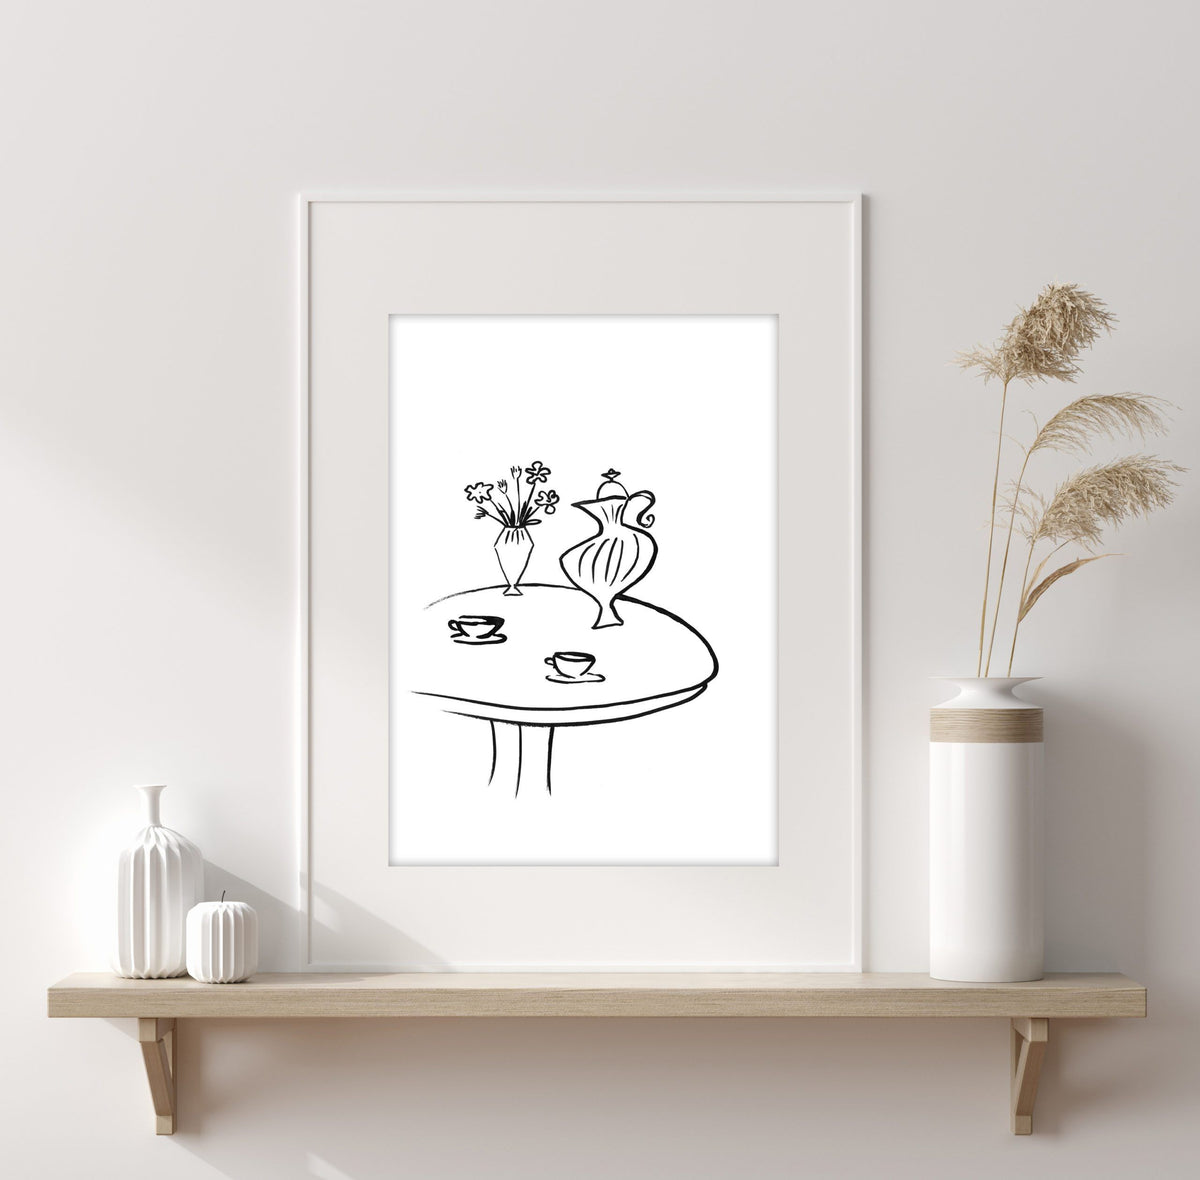 Kunstdruck - ART LINE - B/W COFFEETABLE Kunstdruck Leo la Douce